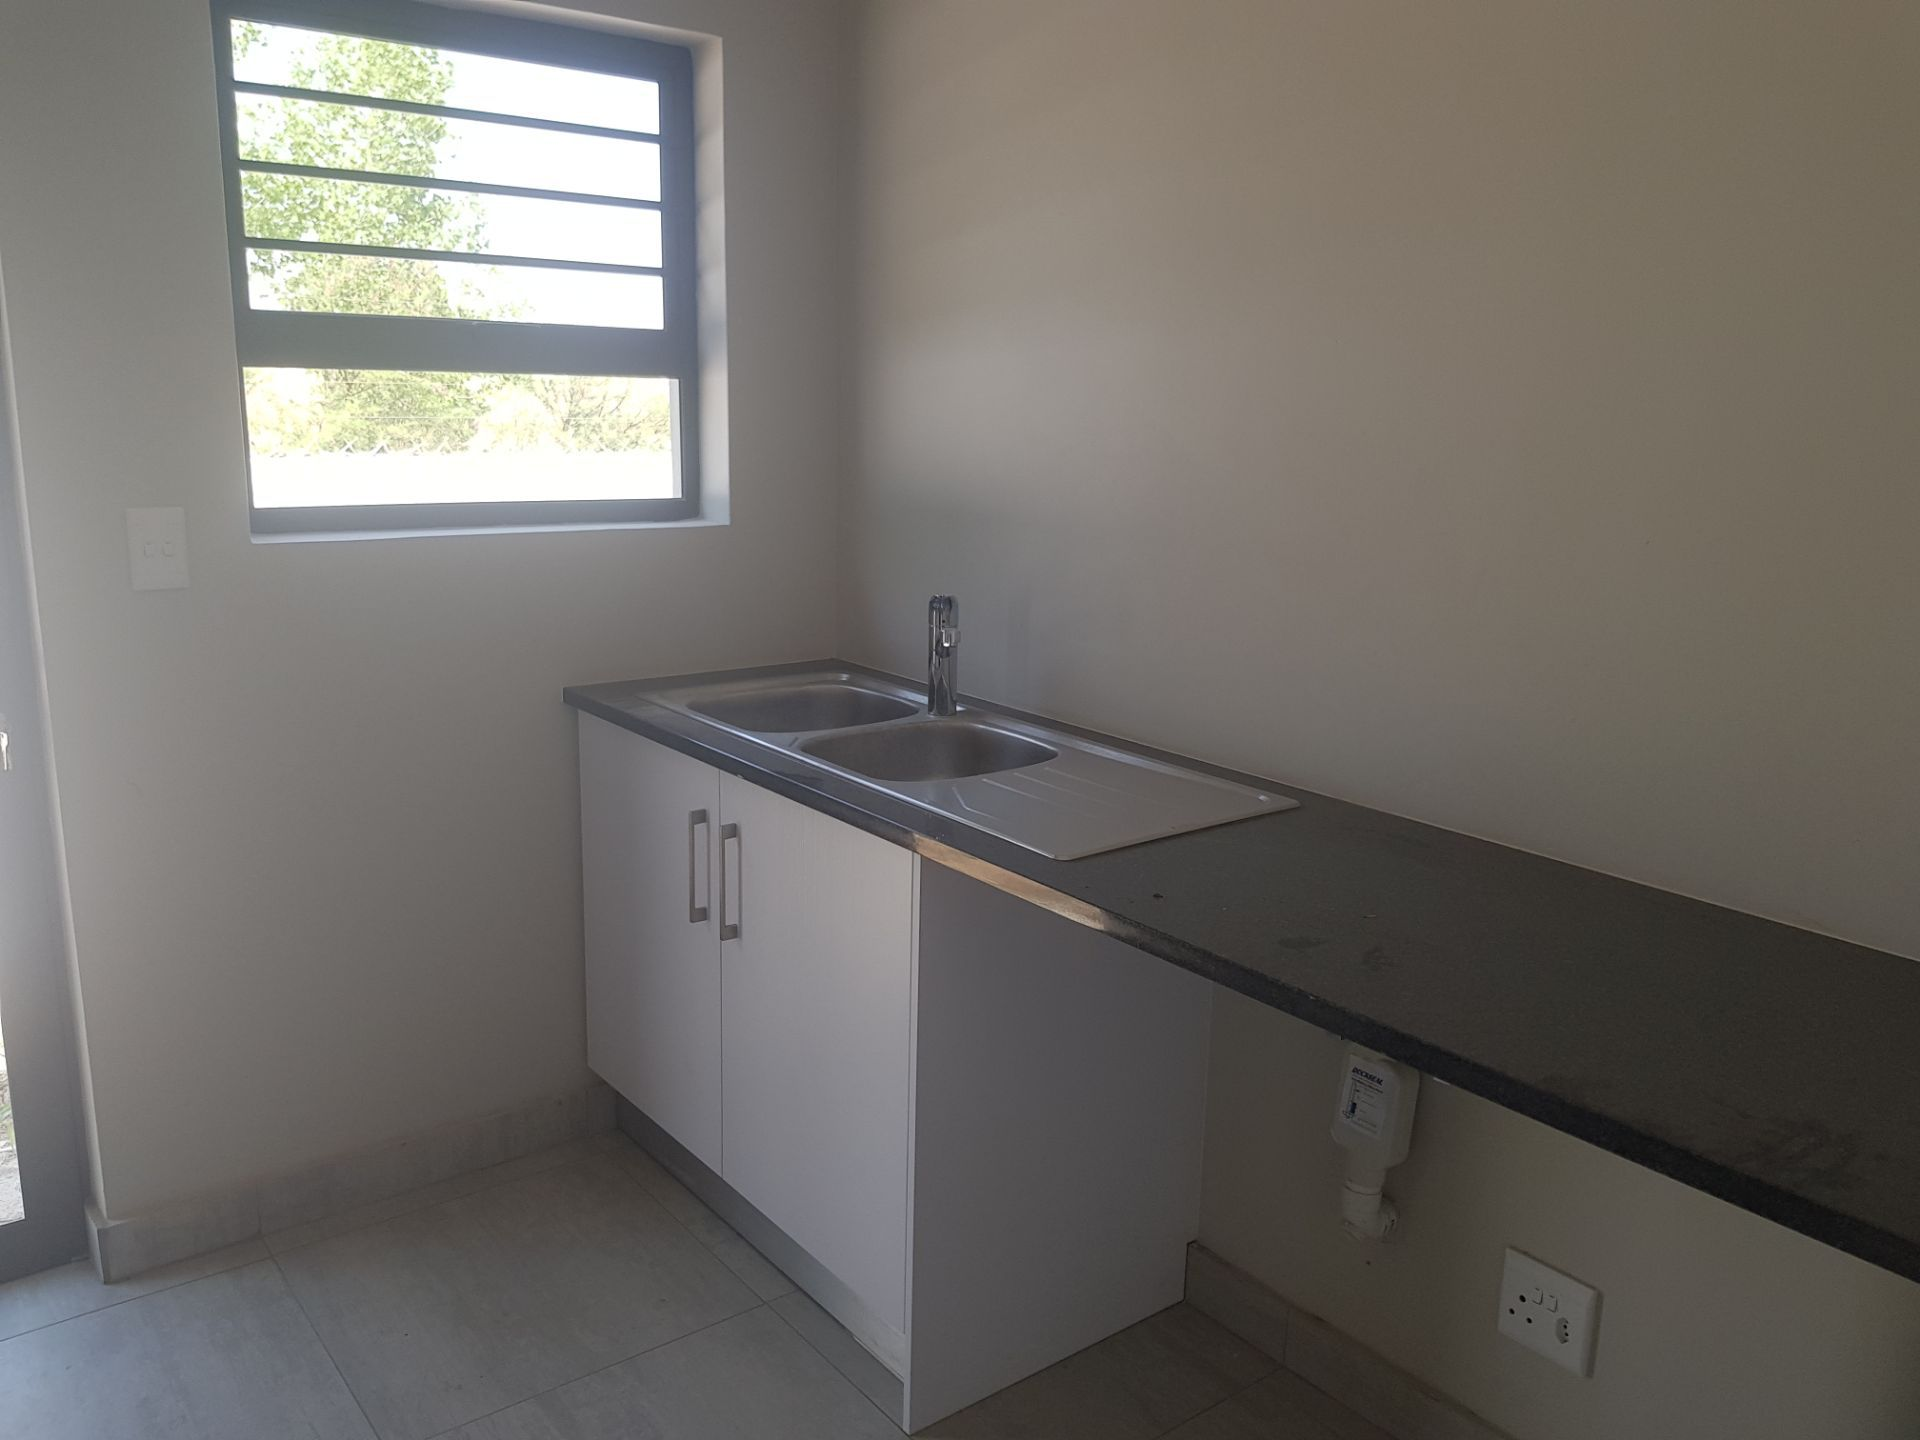 House in Lifestyle Estate - 20190920_130107.jpg